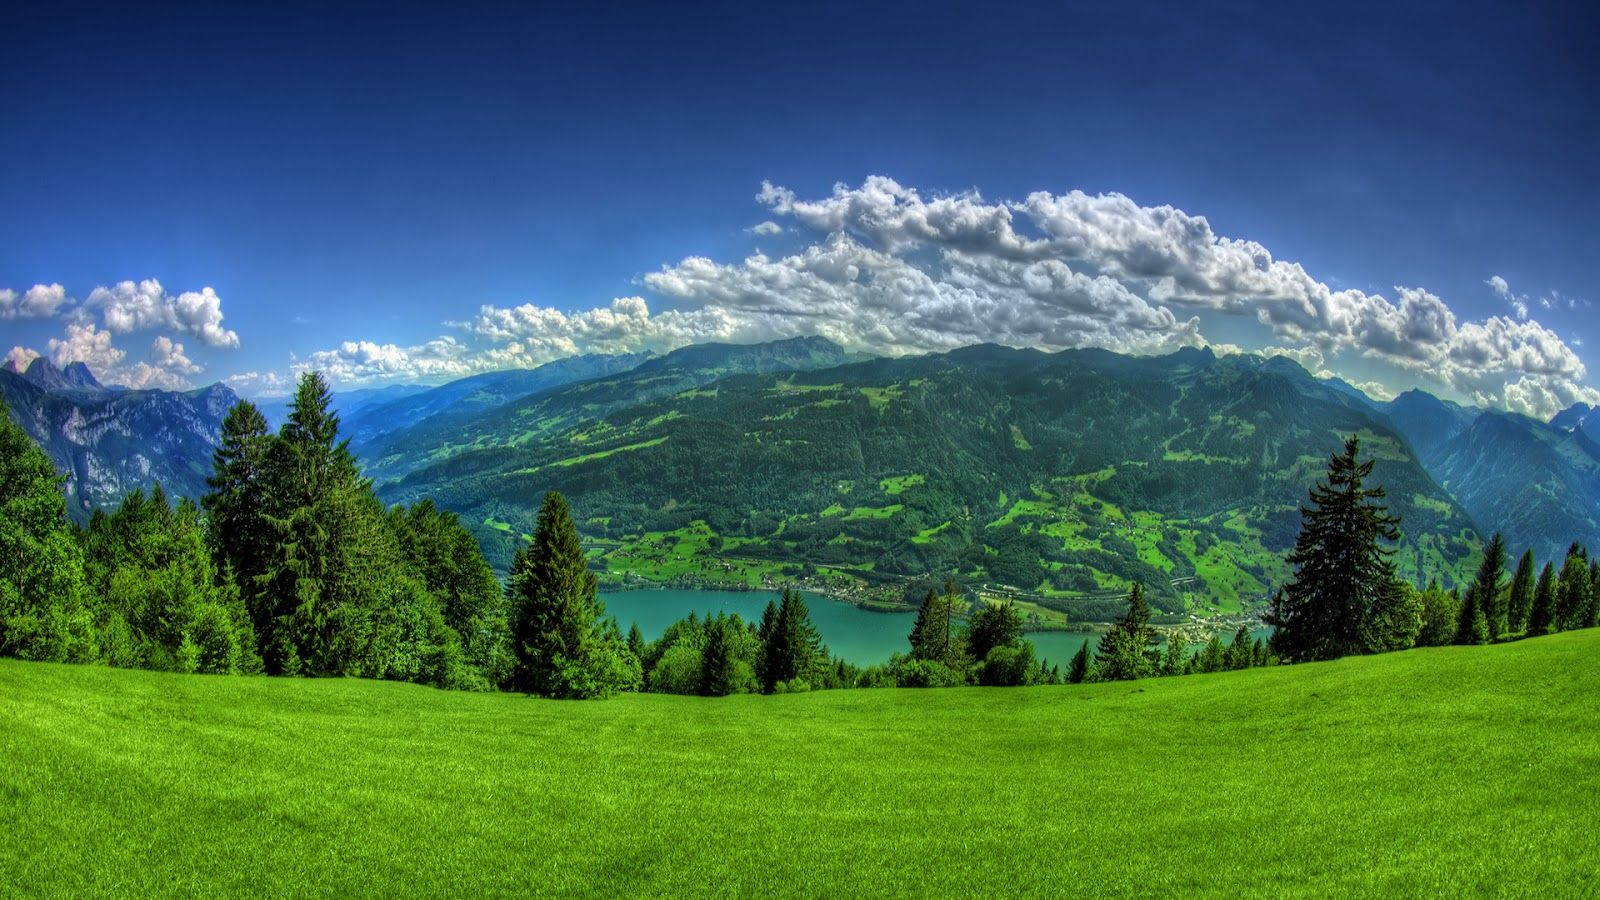 Lush Green Grass Mountains Full Hd Nature High Res Wallpapers For